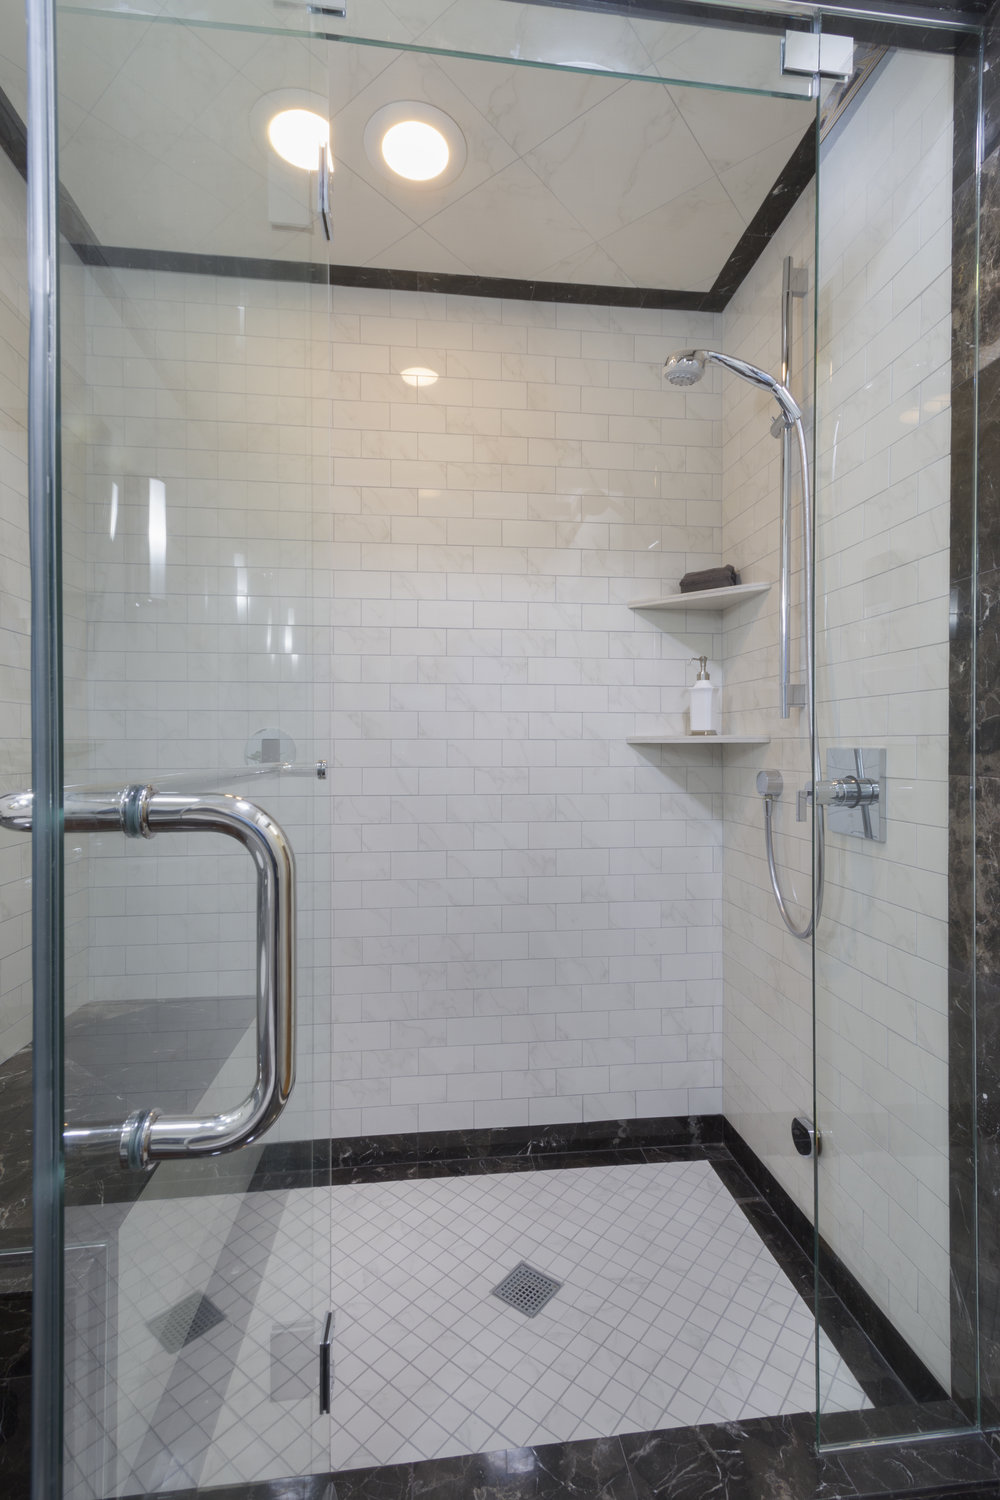 In the Master Bathroom, the tile pattern continues into the glass enclosed steam shower.